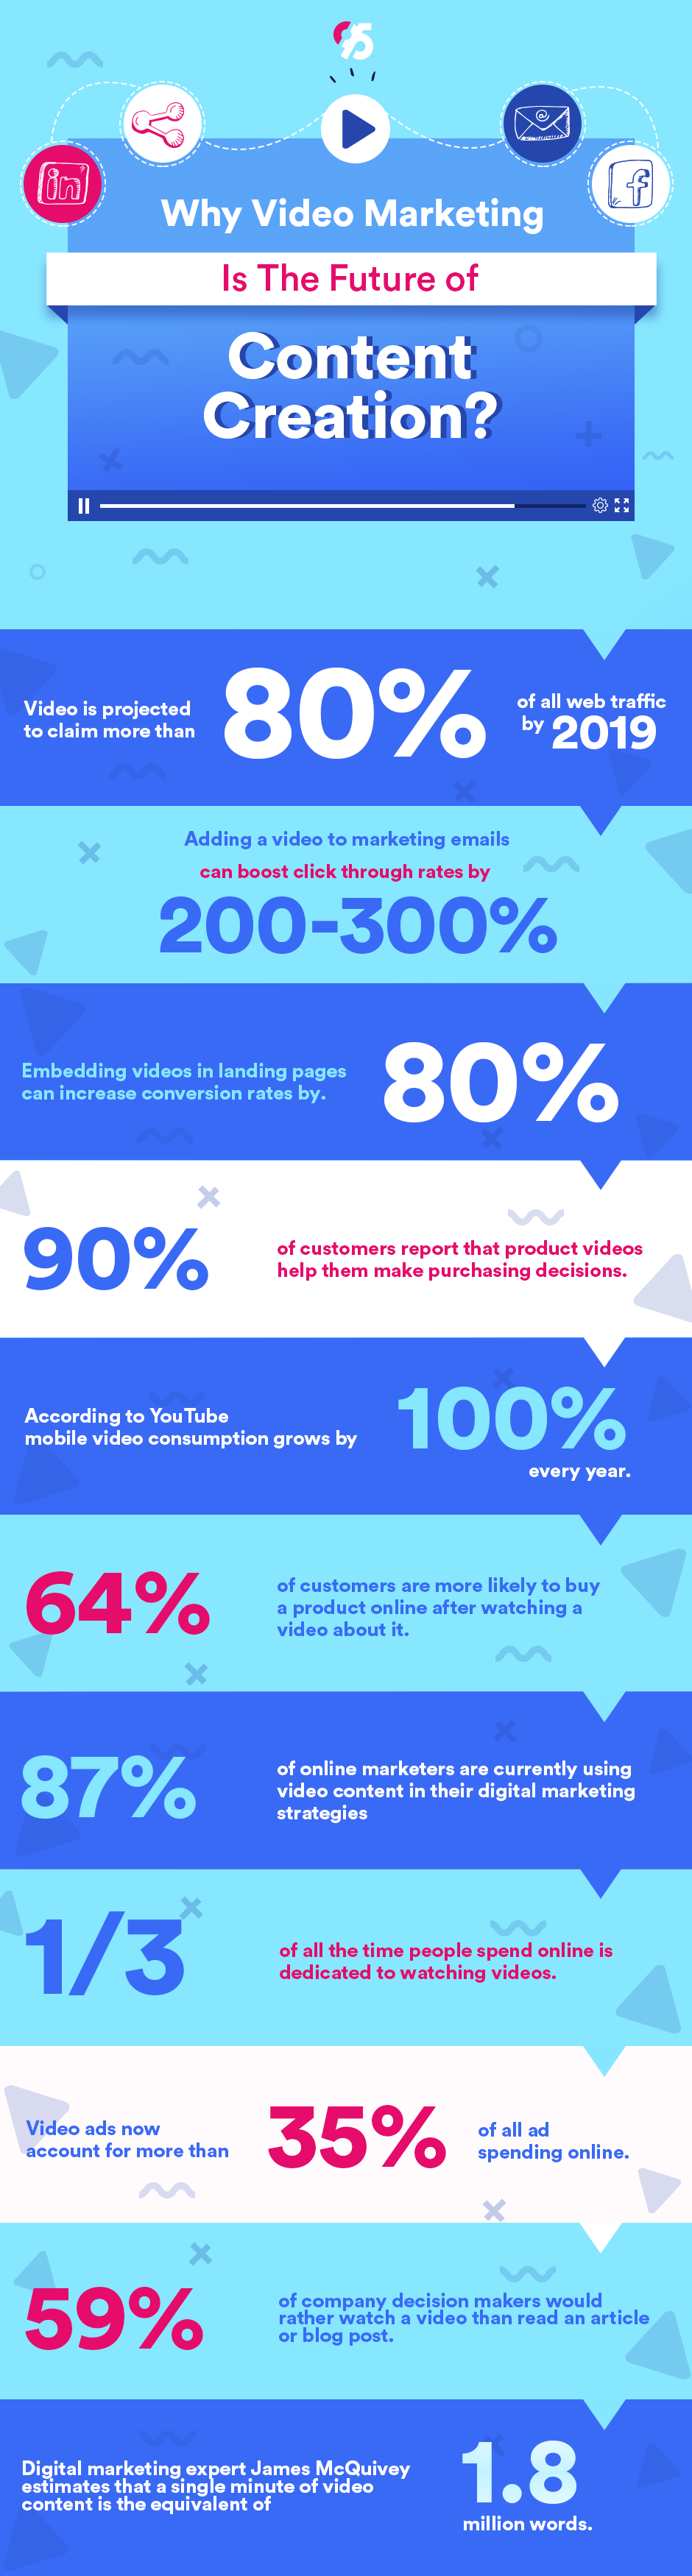 Why Video Marketing Is The Future of Content Creation? - #Infographic